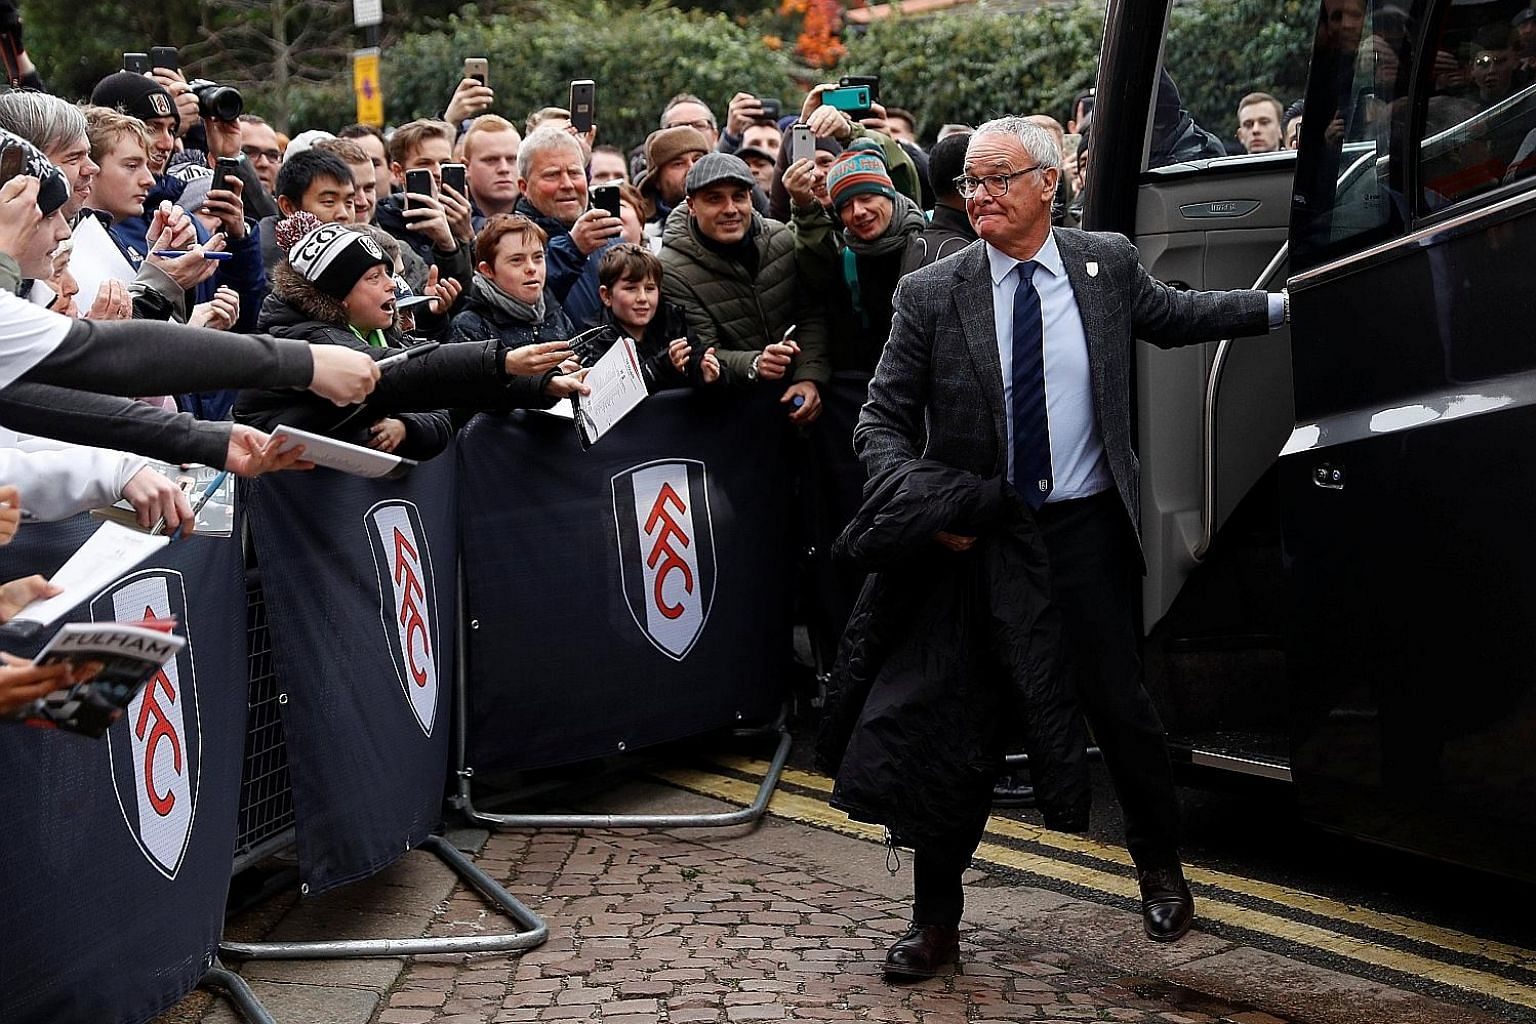 Fulham manager Claudio Ranieri (right) is walking right into a London derby with Chelsea, his former club, in his second match in charge. It is one of three derbies in the EPL this weekend.